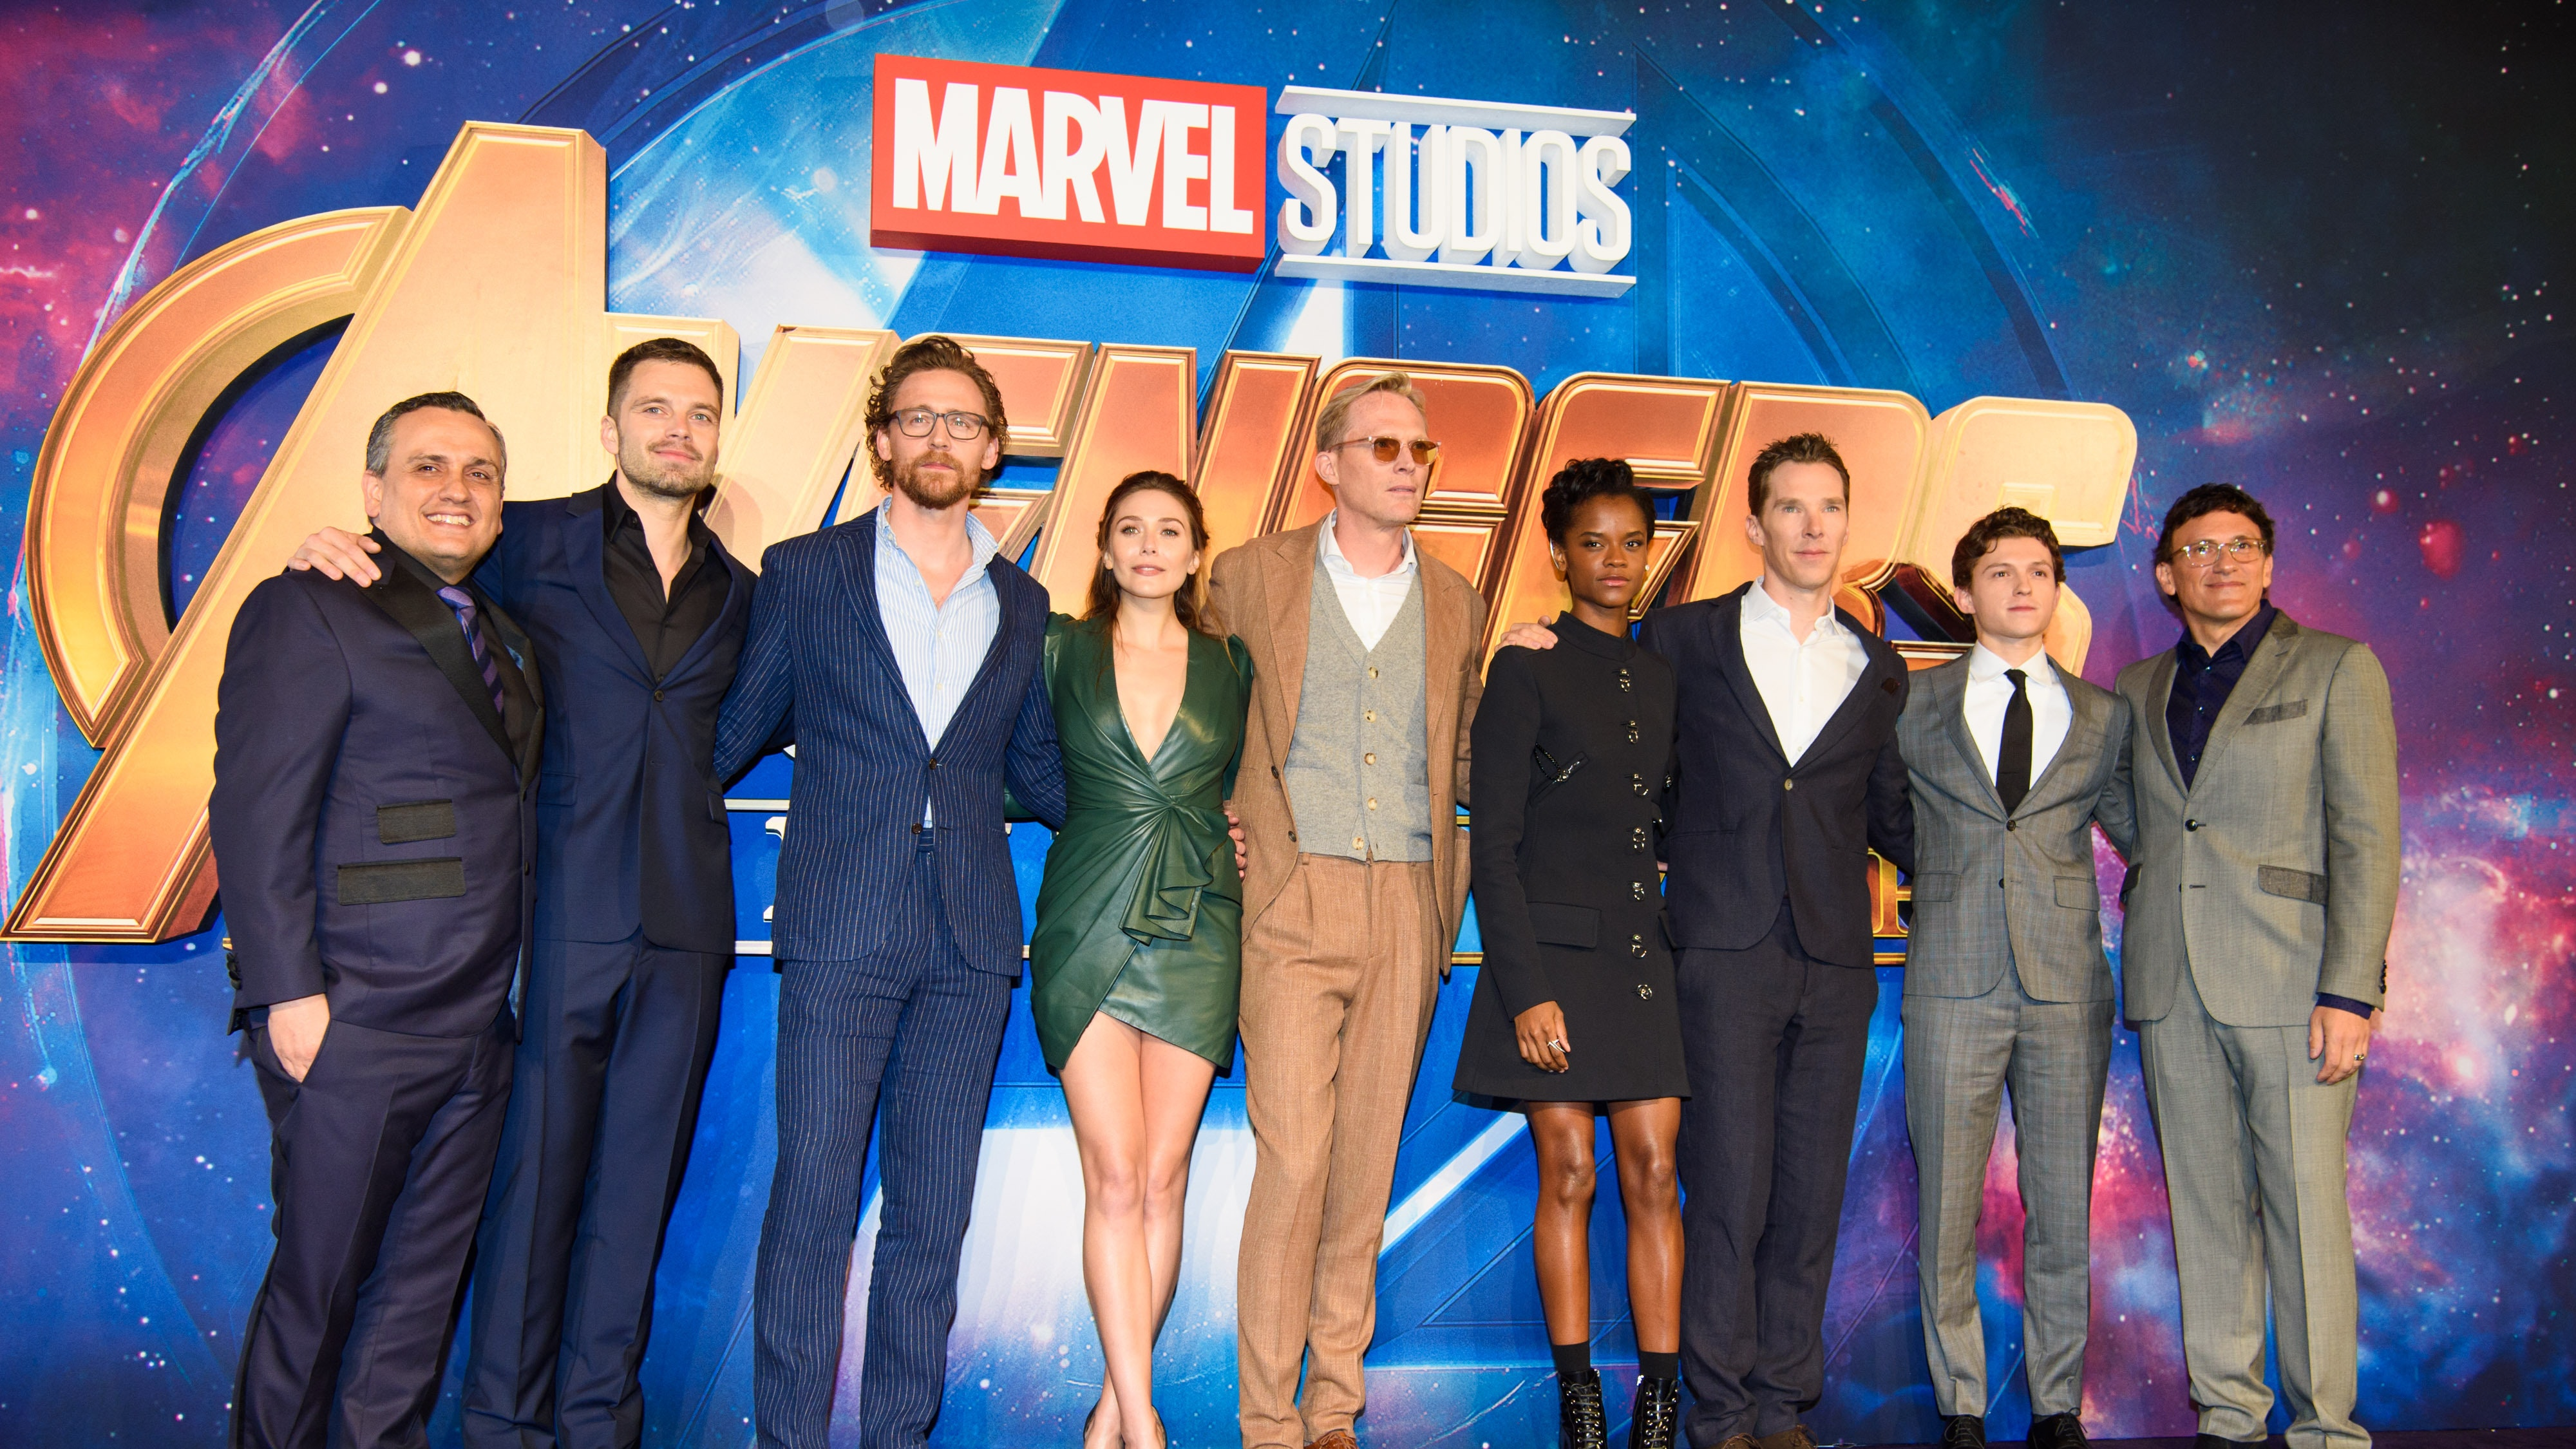 Avengers Star Wars And Toy Story Among Films To Savour In